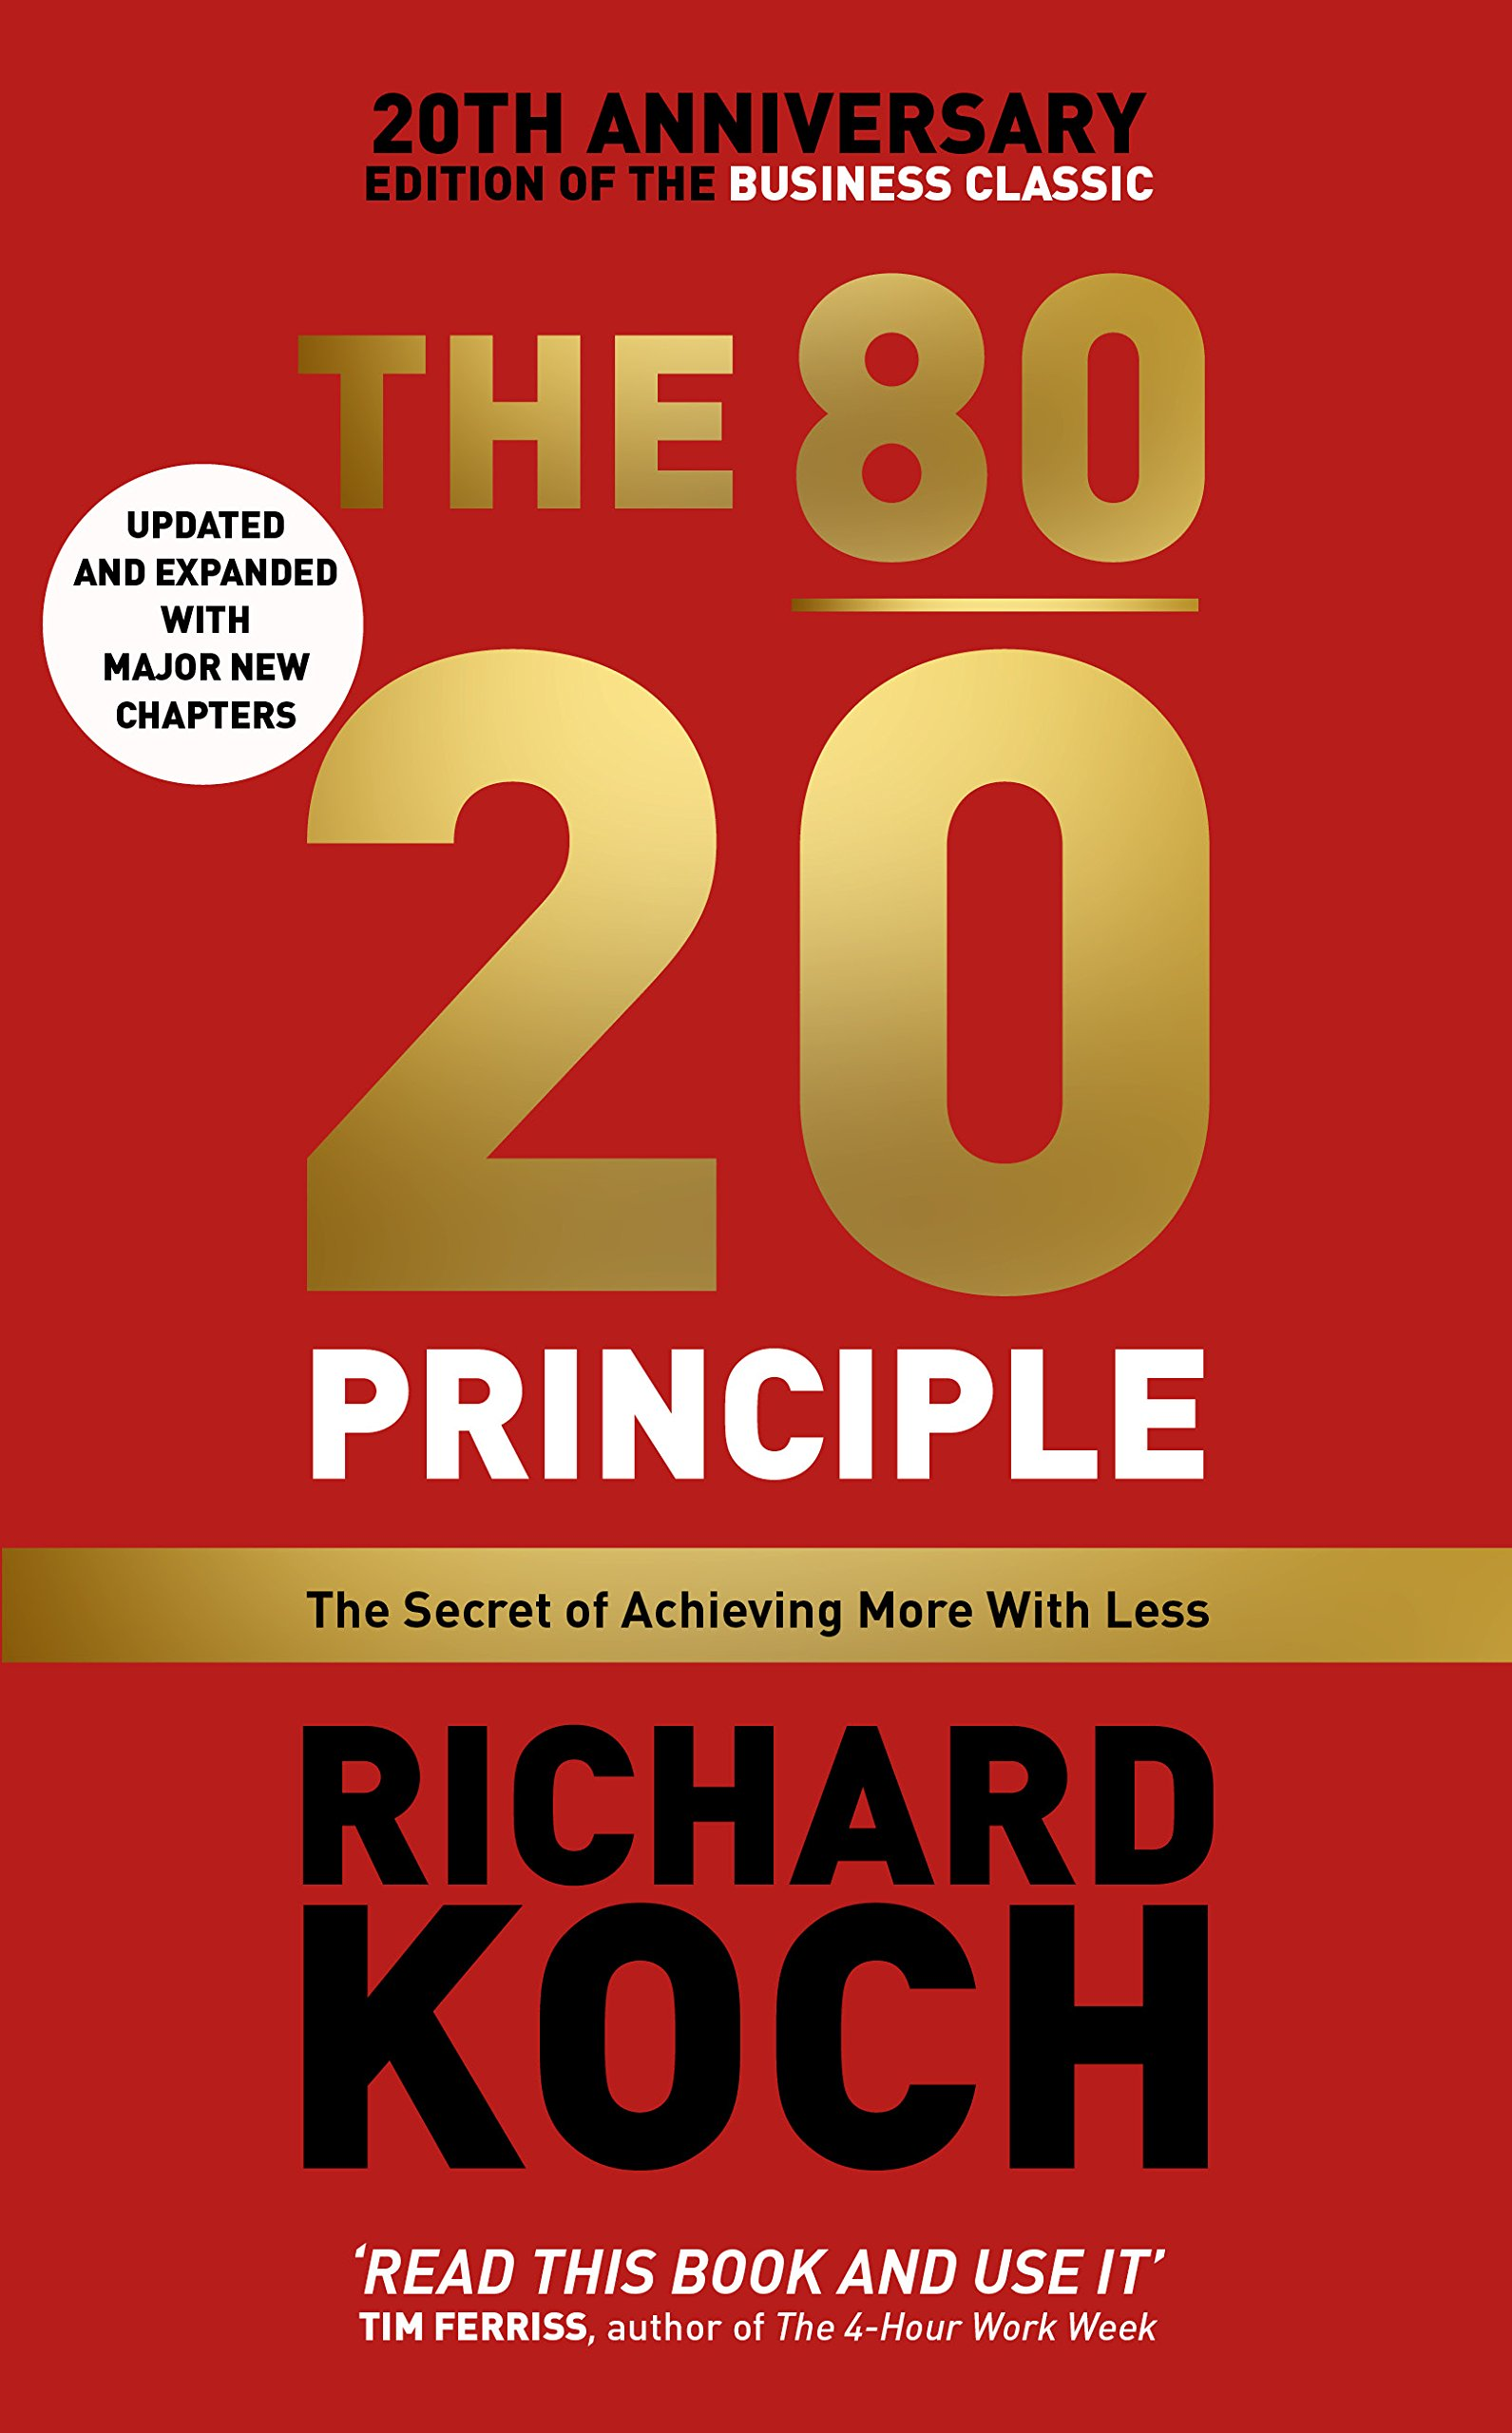 THE 80-20 PRINCIPLE : The Secret of Achieving More With Less - Updated and Expanded wit Major New Chapters